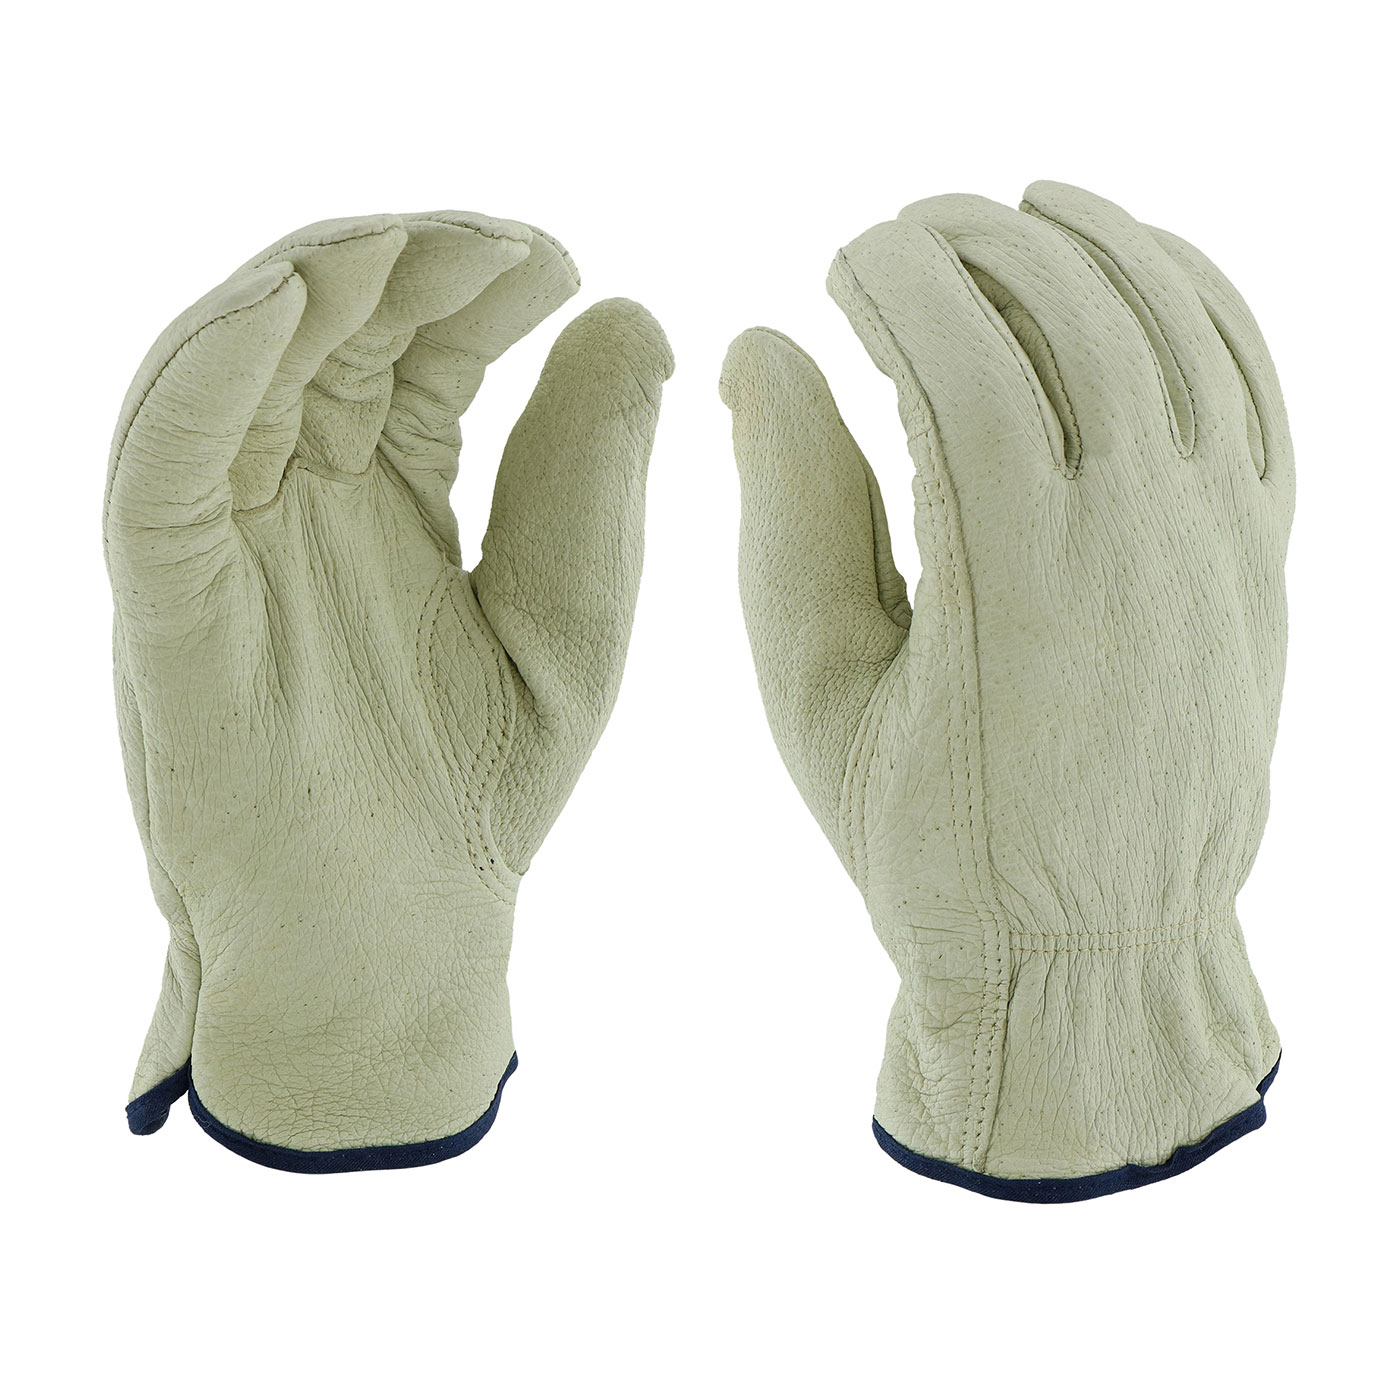 994KP PIP® Posi-Therm® Top Grain Pigskin Leather Drivers Glove with Keystone Thumb